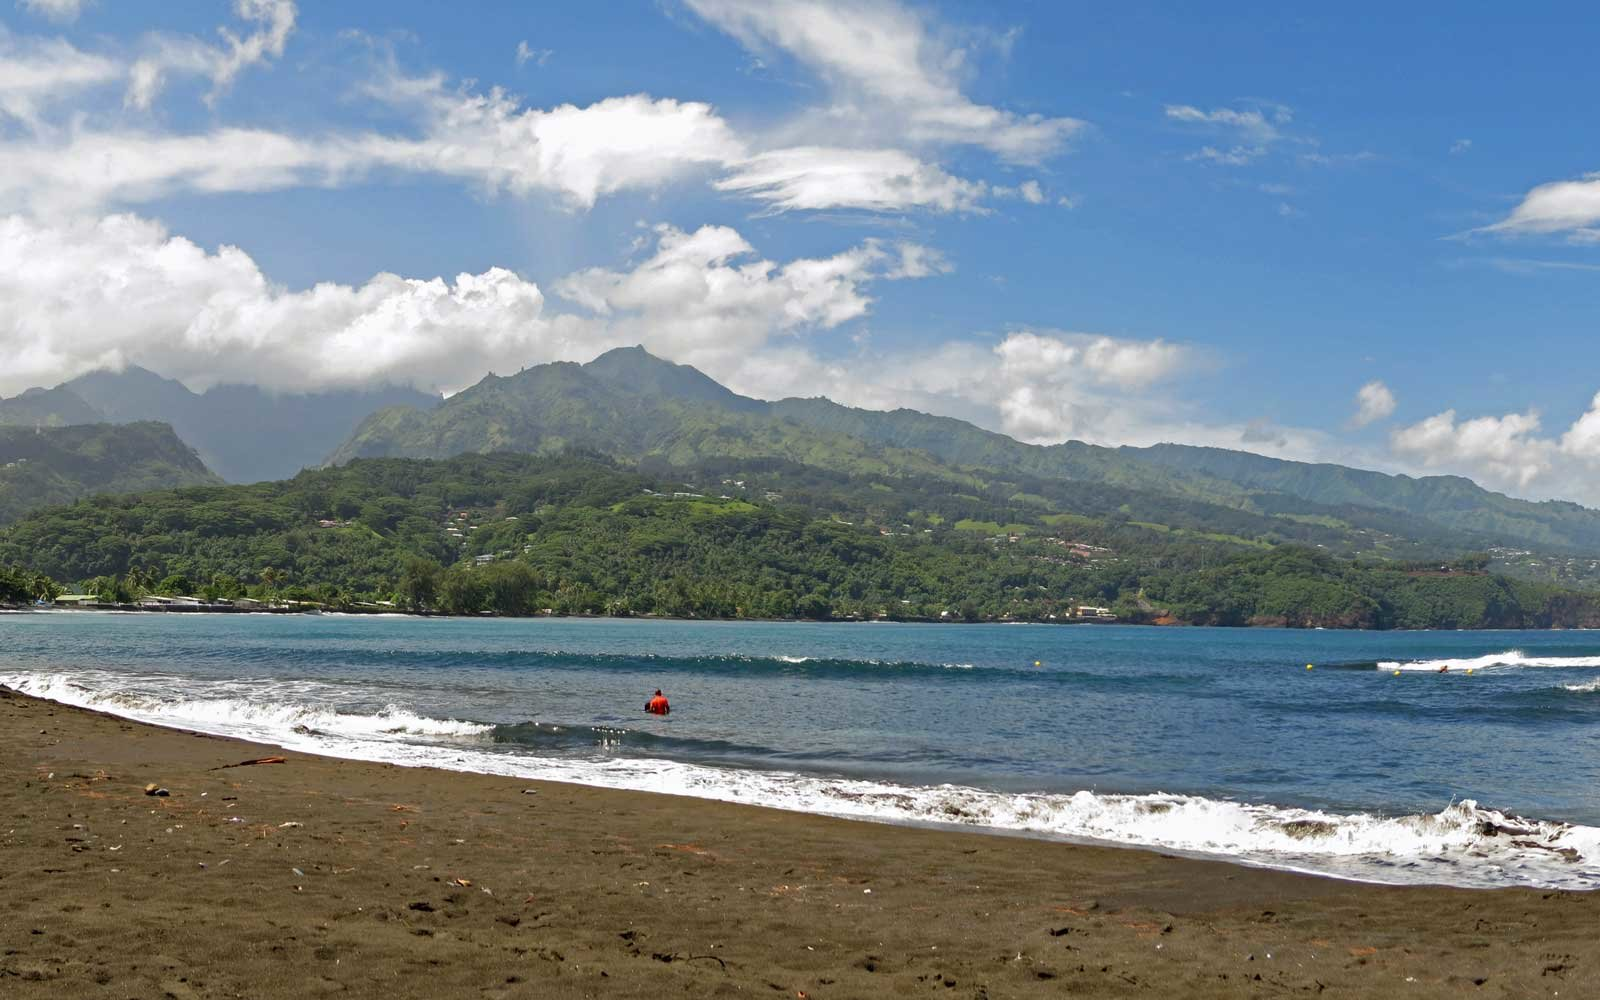 A panoramic view of the black sand beach at historic Point Venus on Tahiti, now a public park Both Captain Cook and Captain Bligh visited here in the 1700s.